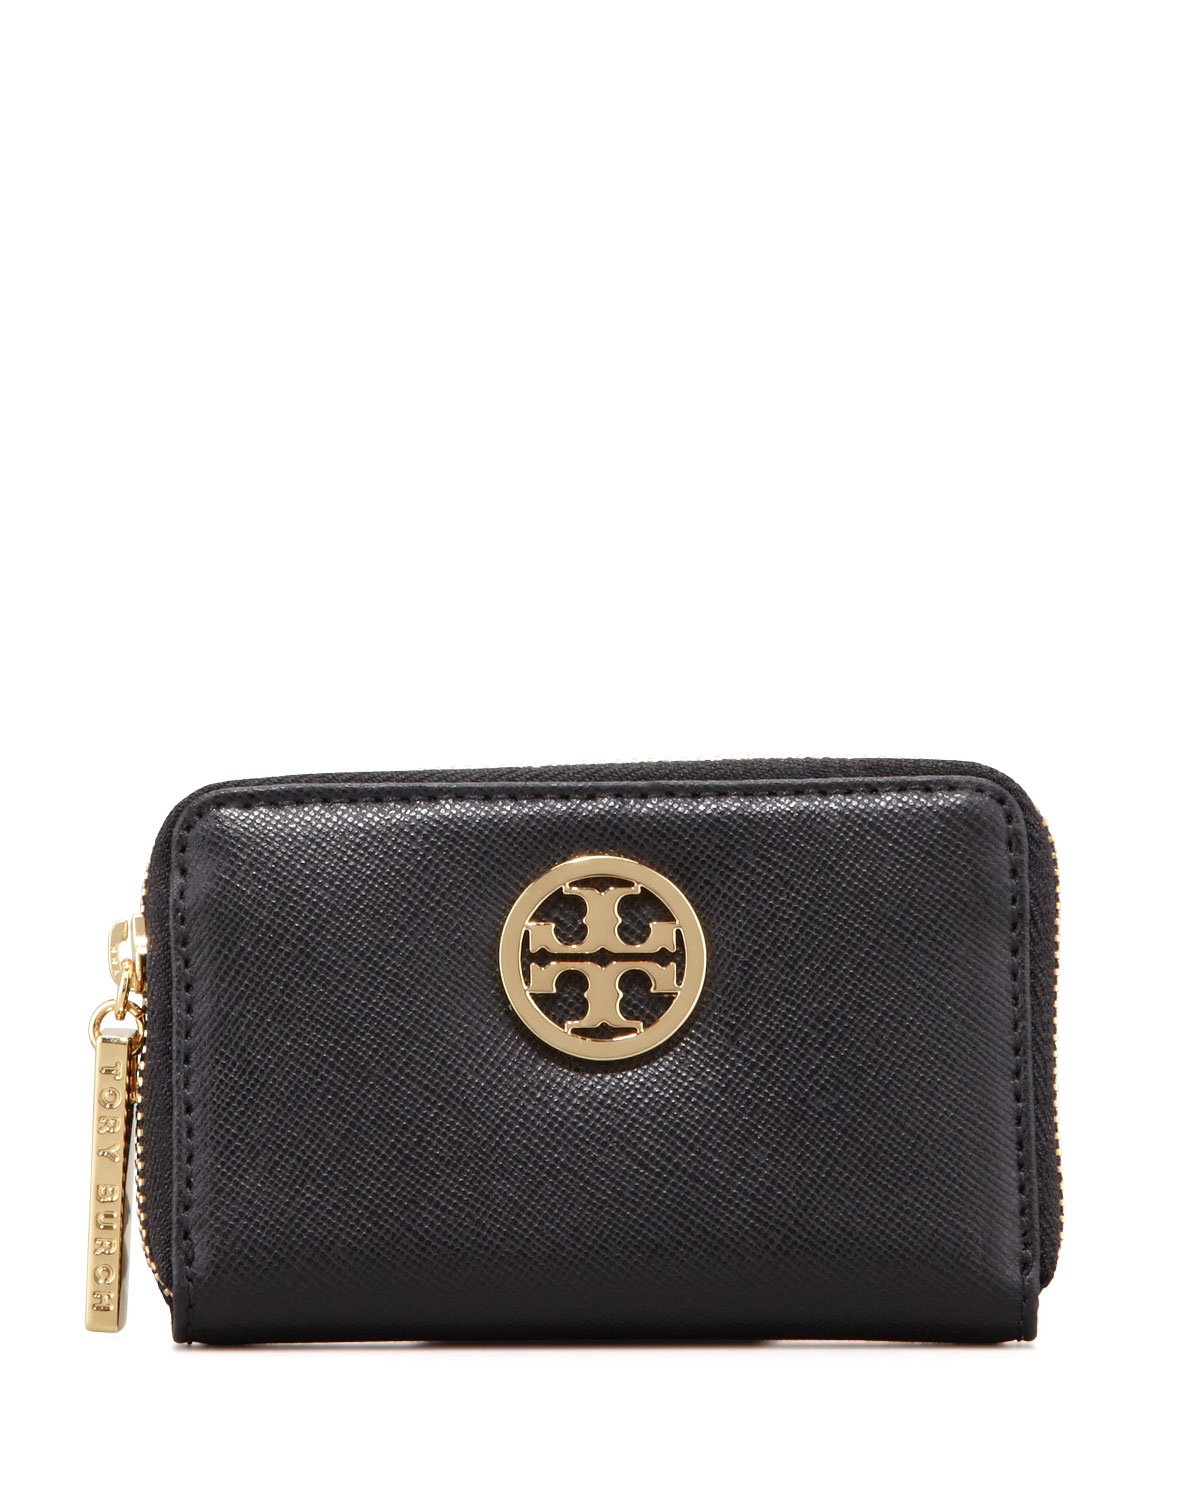 8c008dfbca7e Tory Burch Robinson Zip Coin Case